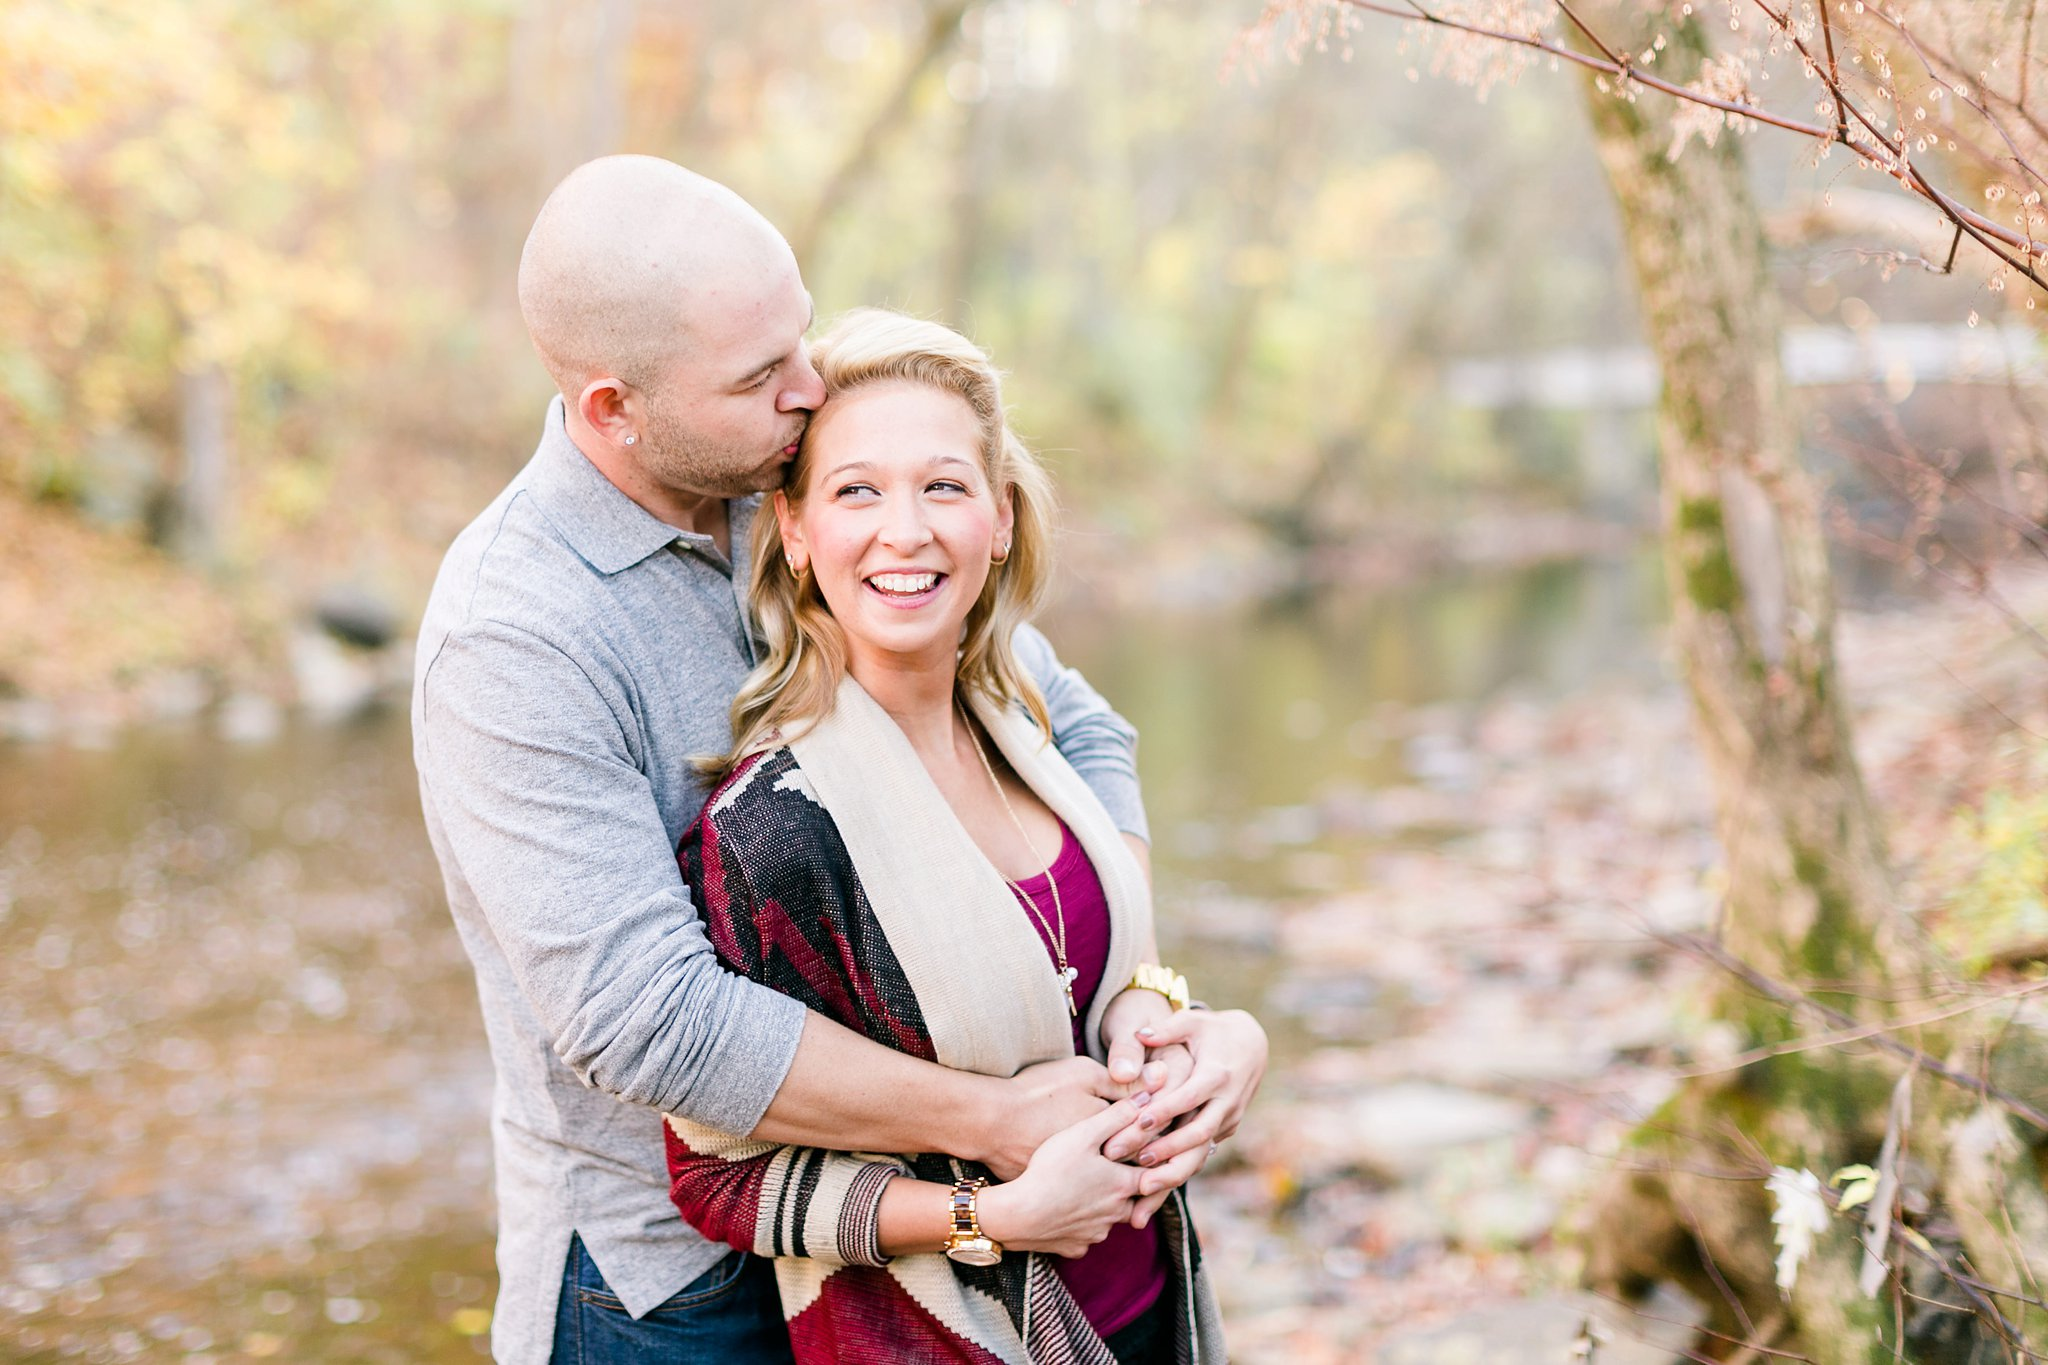 Rock Creek Park Engagement Photos DC Wedding Photographer Megan Kelsey Photography Katie & Conor-68.jpg